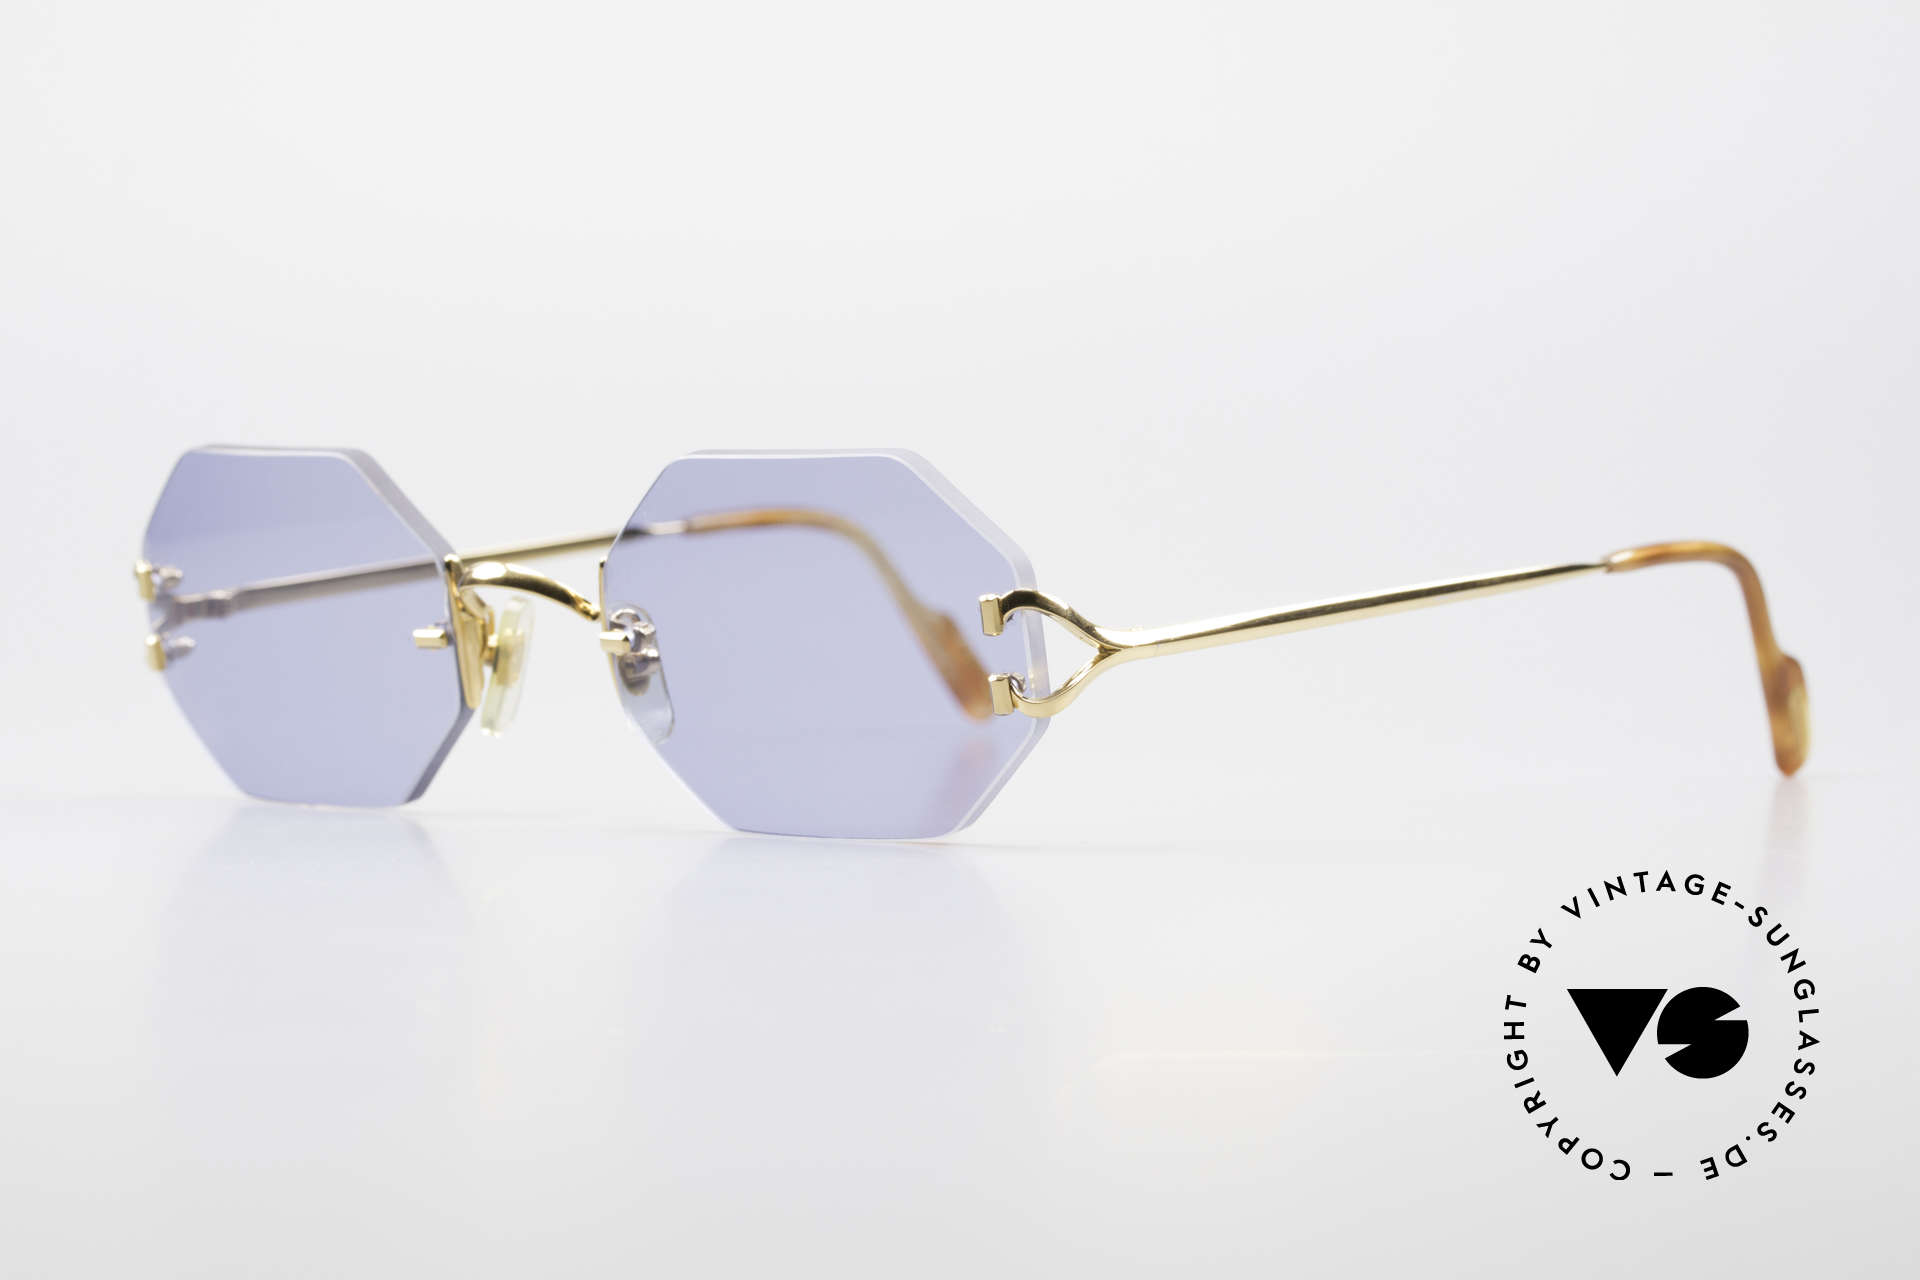 Cartier Rimless Octag Octag Shades One of a Kind, customized by our optician; in large size (140mm), Made for Men and Women